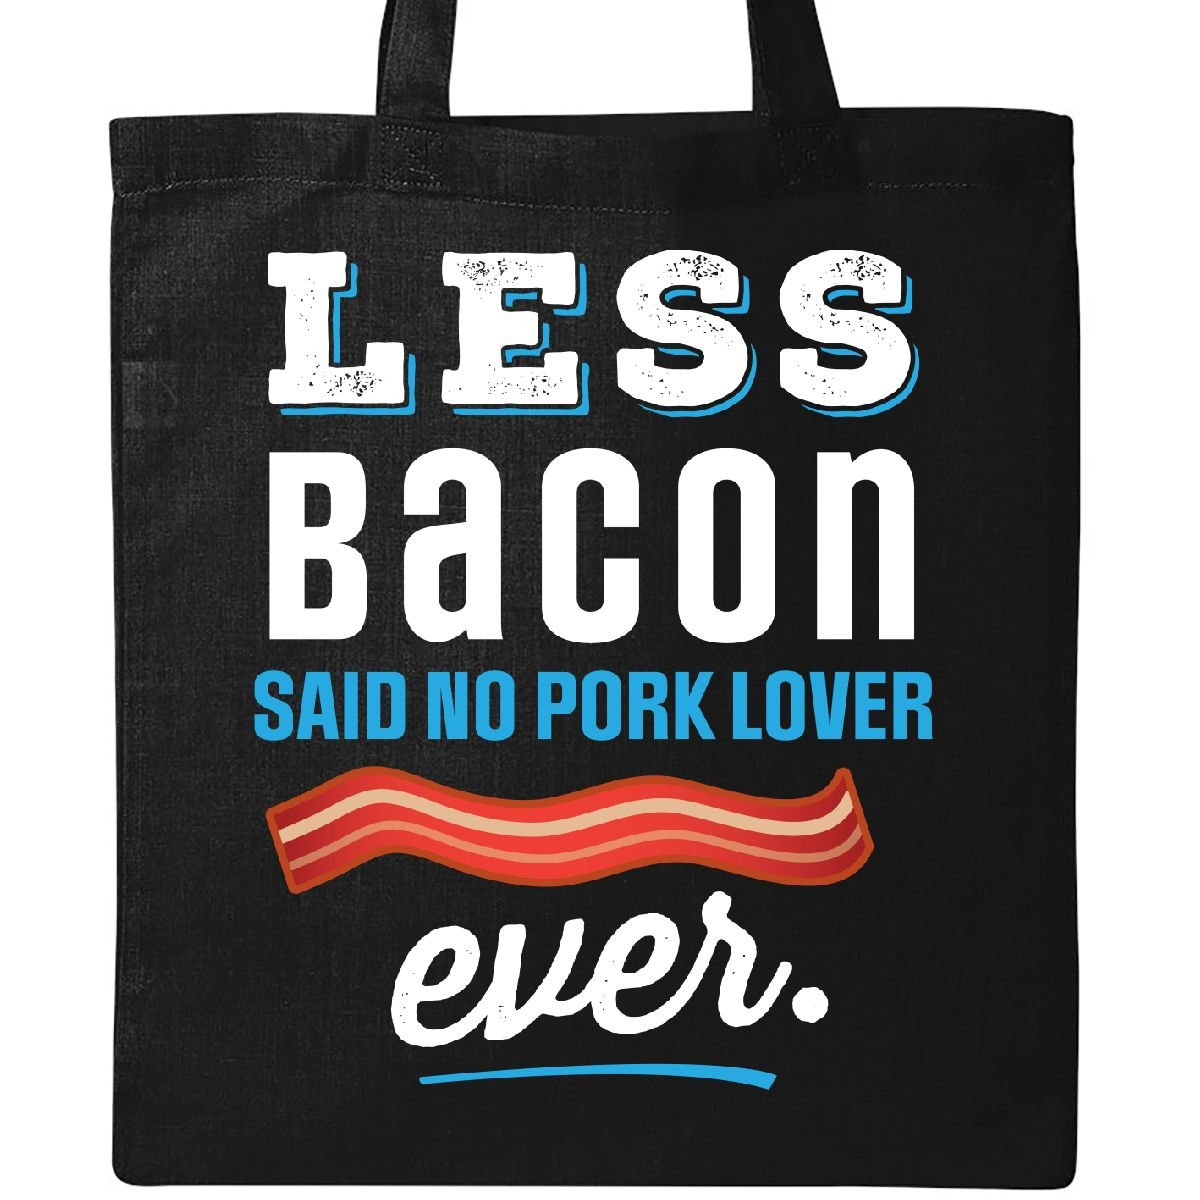 Inktastic - Funny Bacon Lover Gift Tote Bag Black 2e1aa